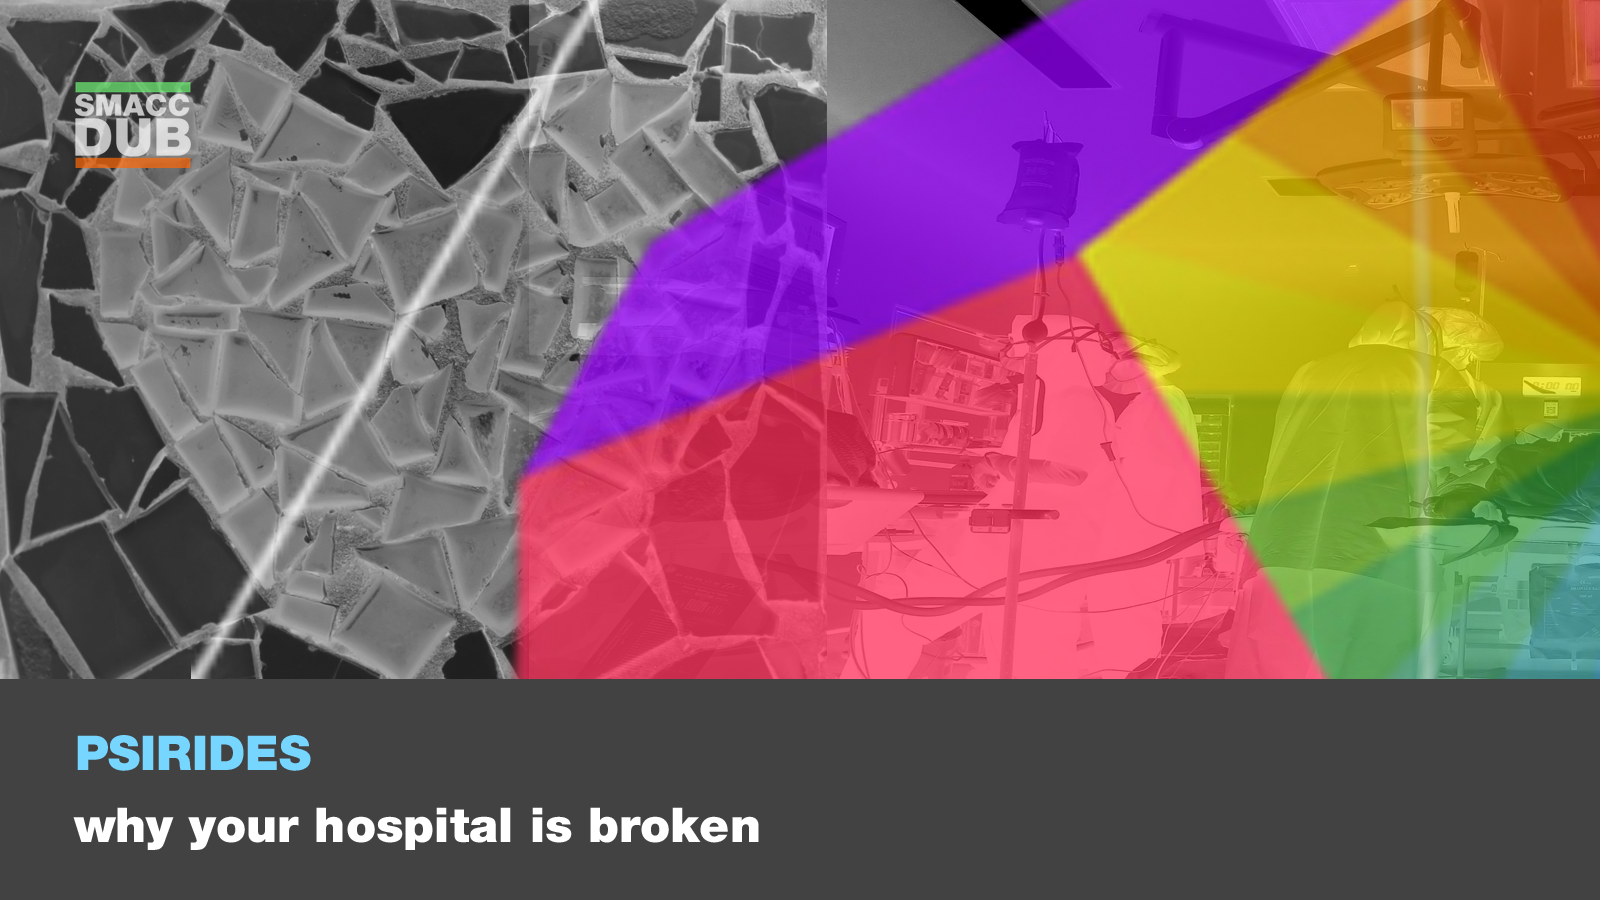 Psirides - Why your hospital is broken